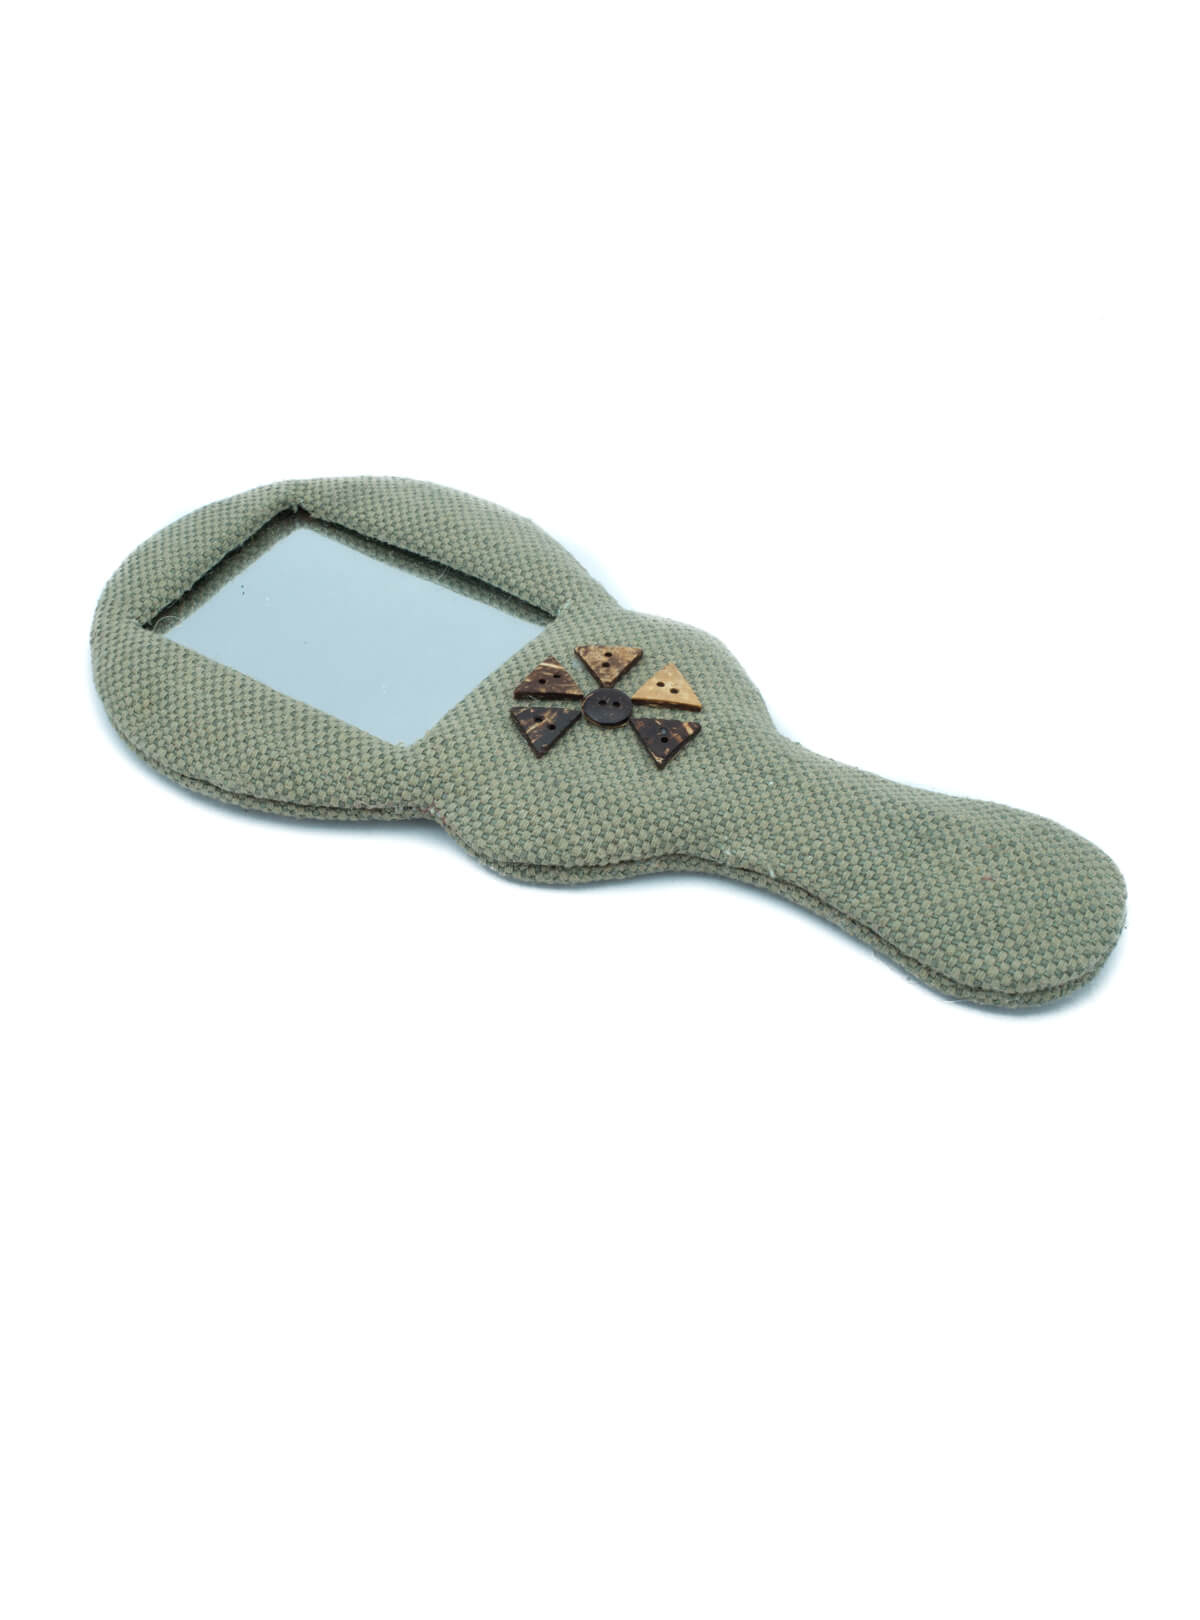 Eco-Friendly Jute Hand Mirror